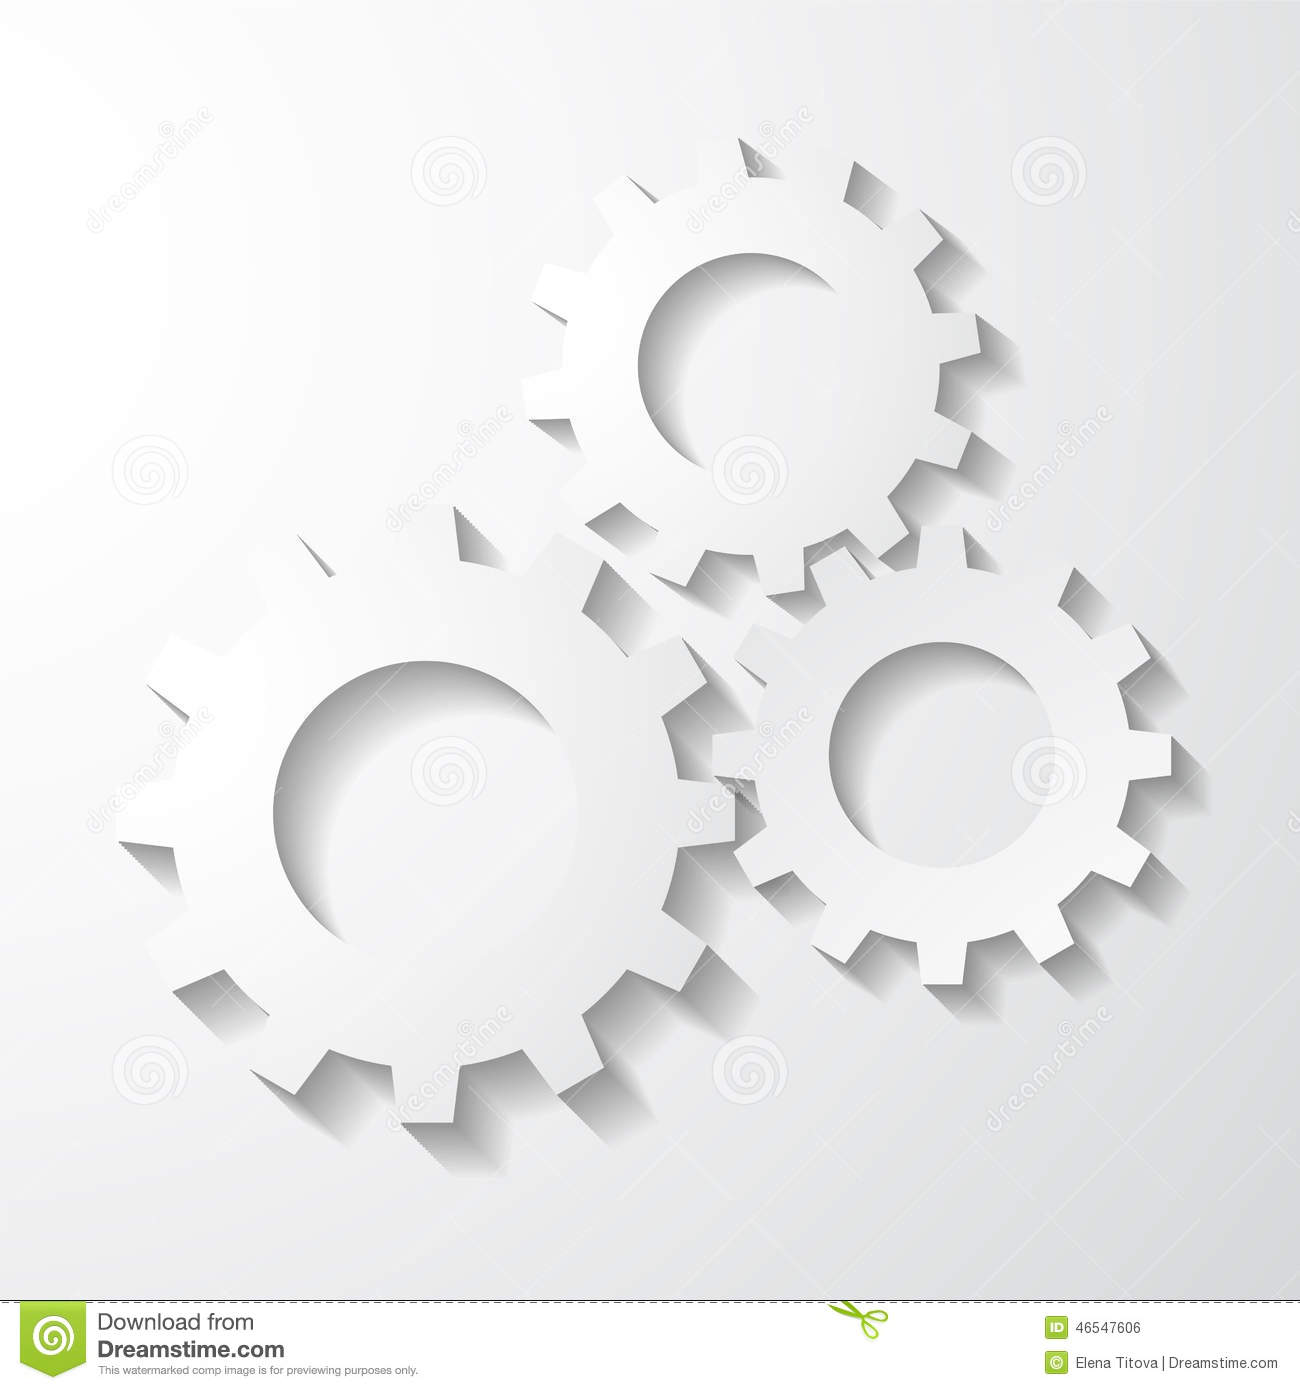 Gear icon stock vector. Illustration of power, motion ...